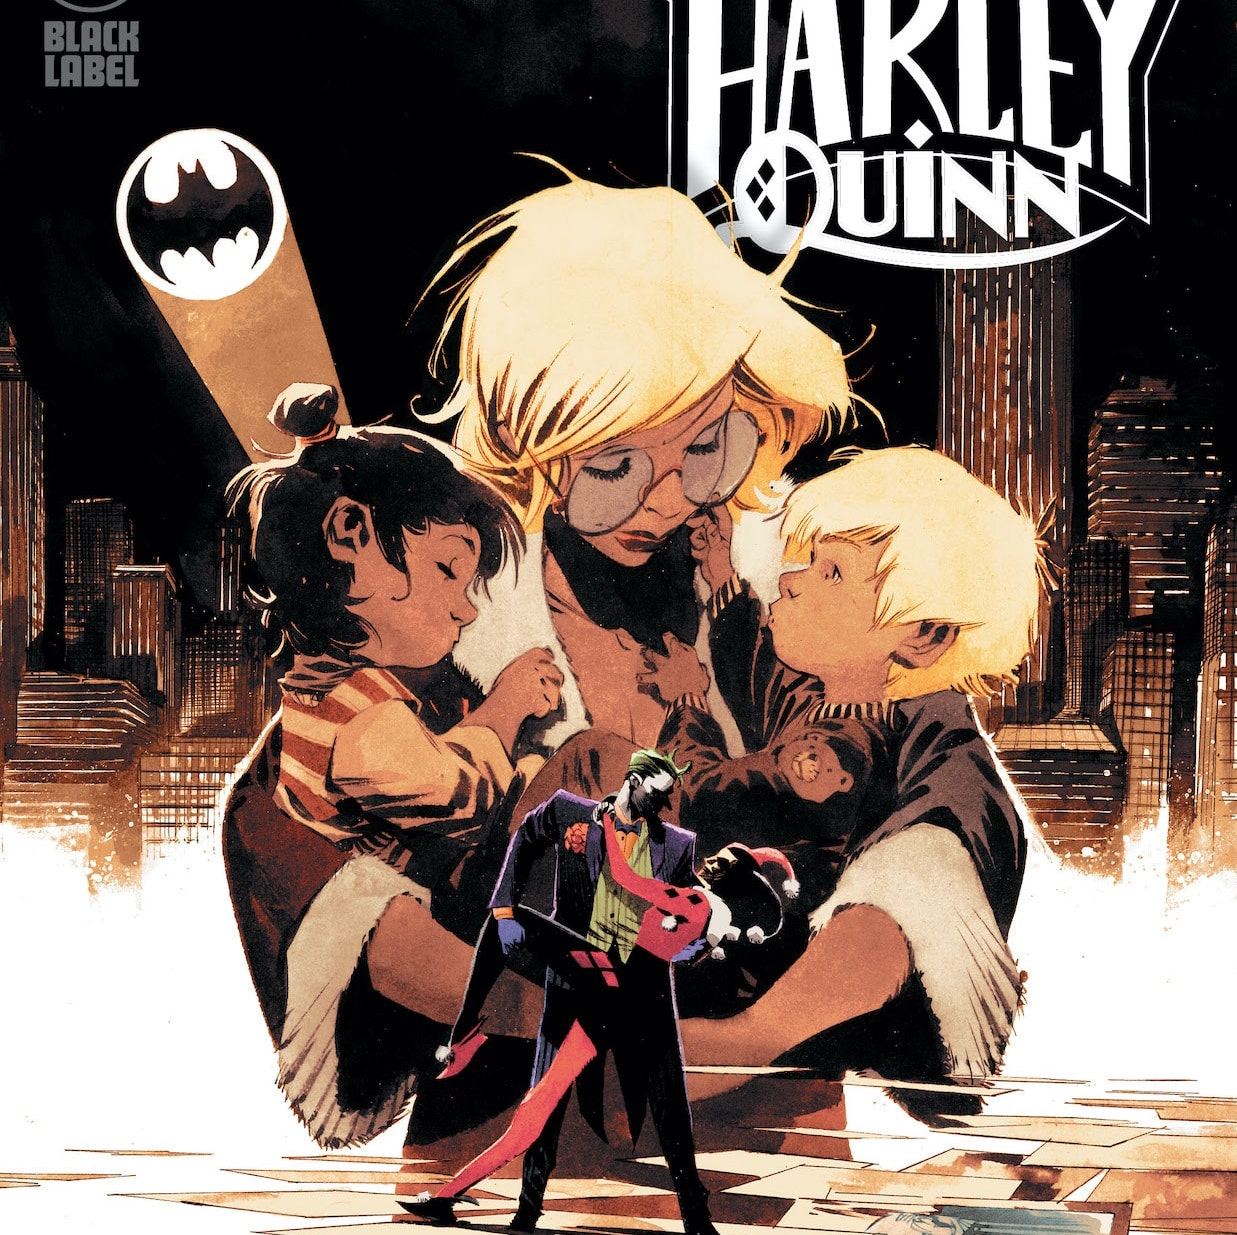 Batman: White Knight Presents Harley Quinn is set for release October 20, 2020.